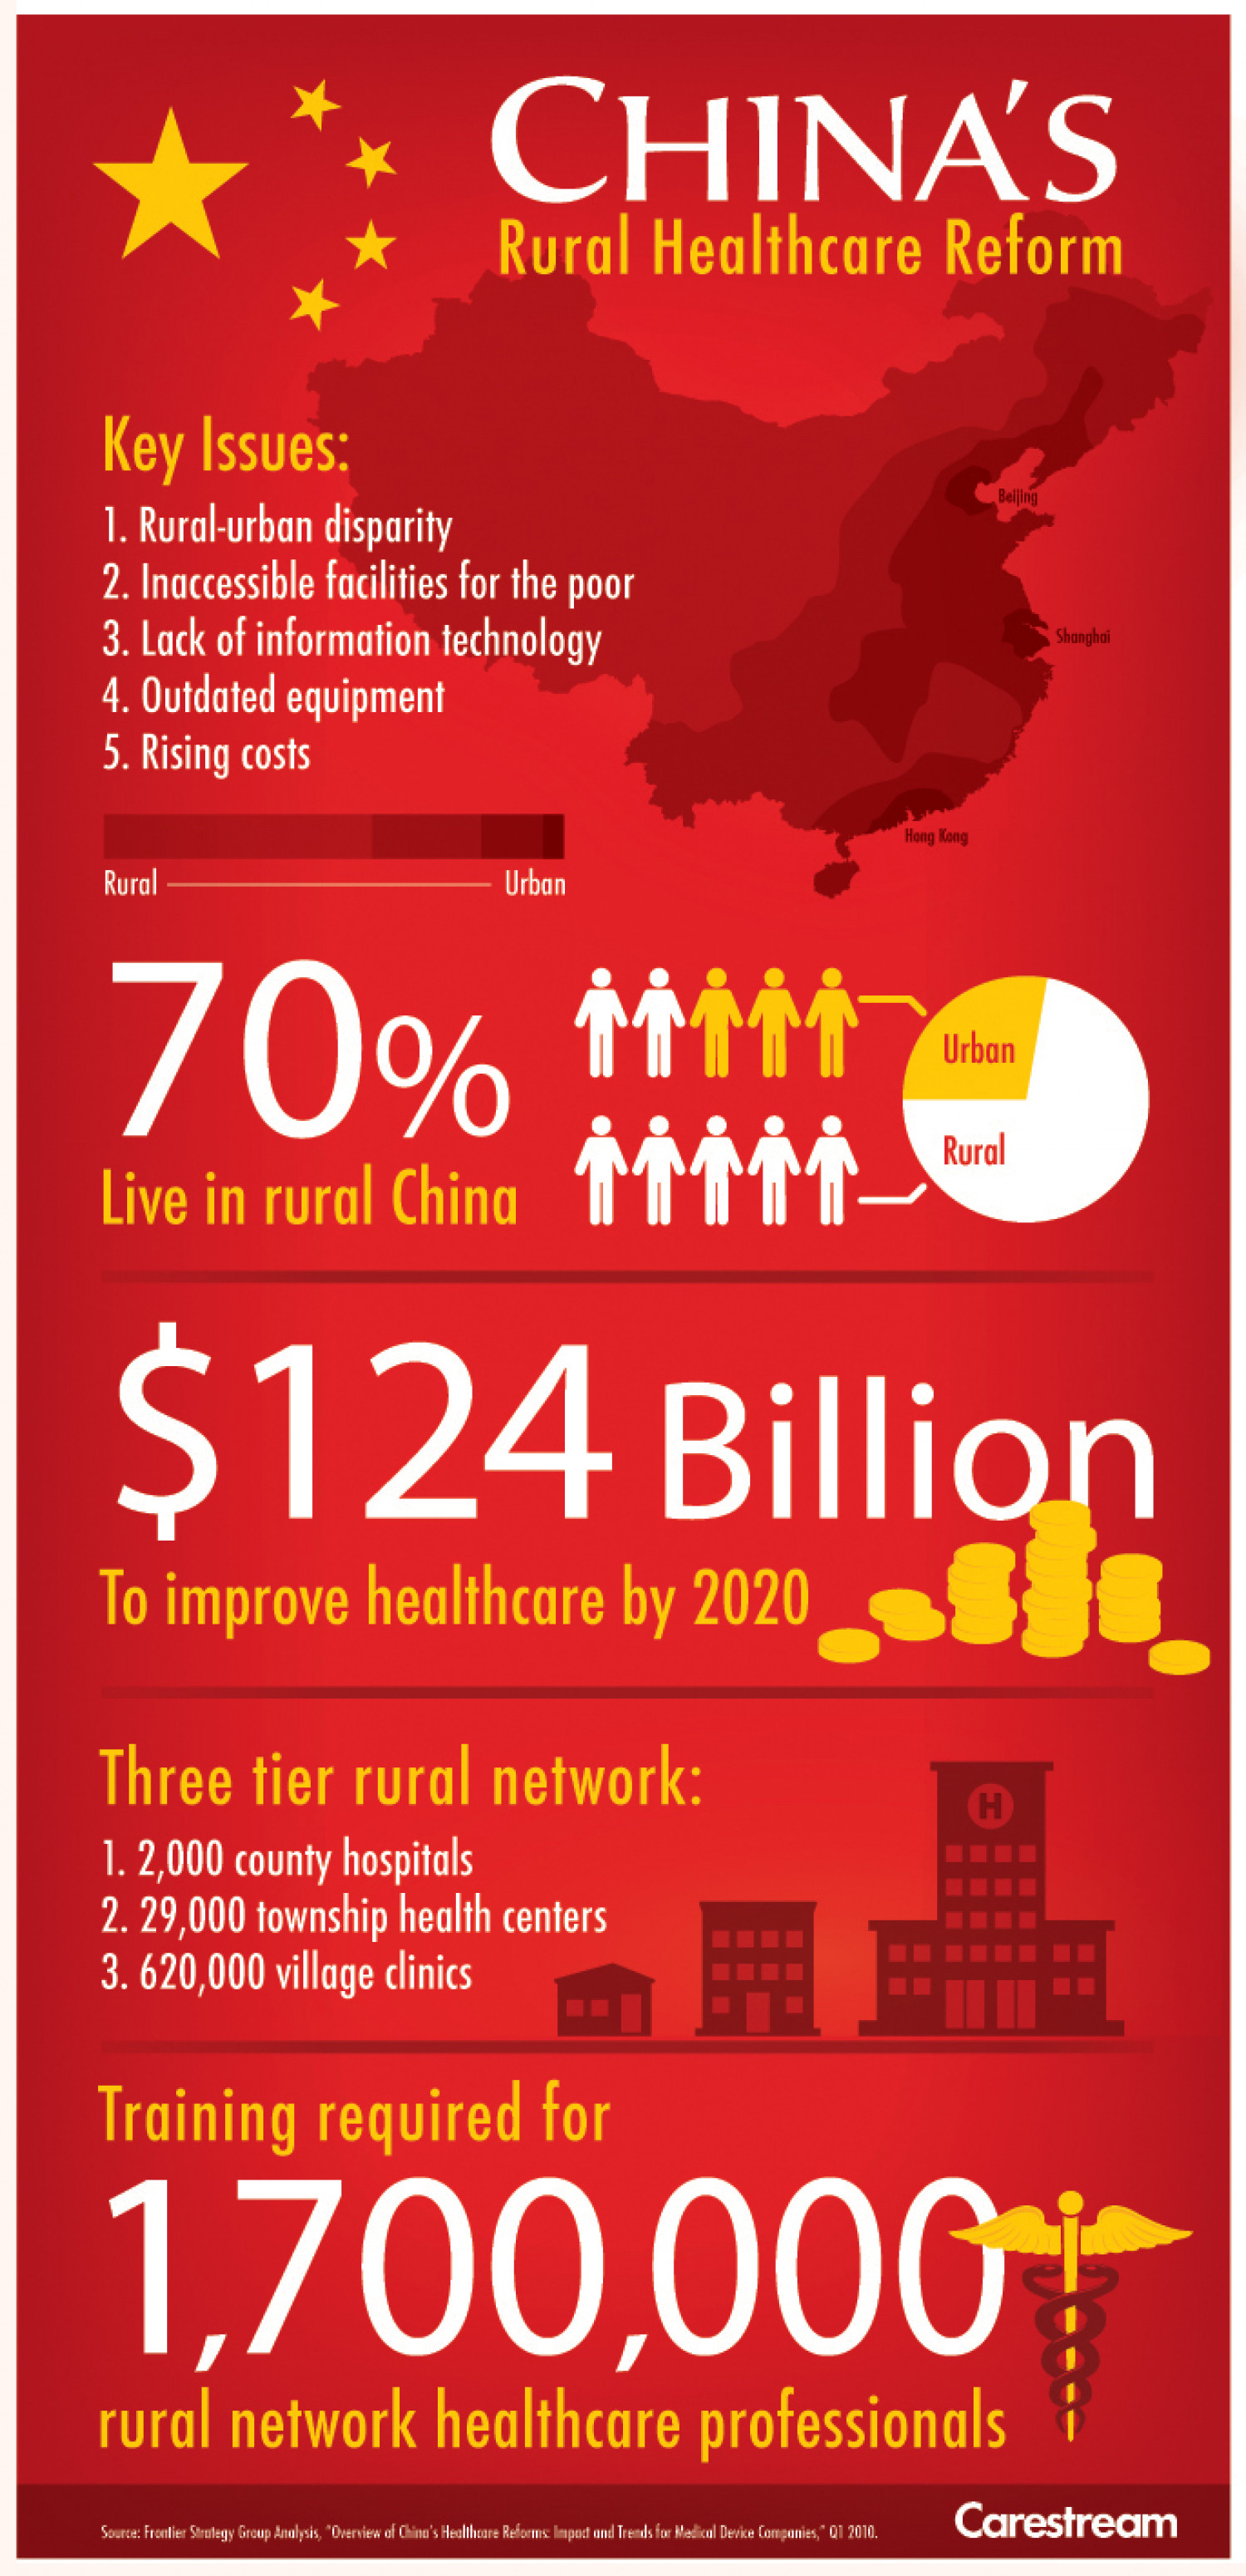 China's Rural Healthcare Reform Infographic